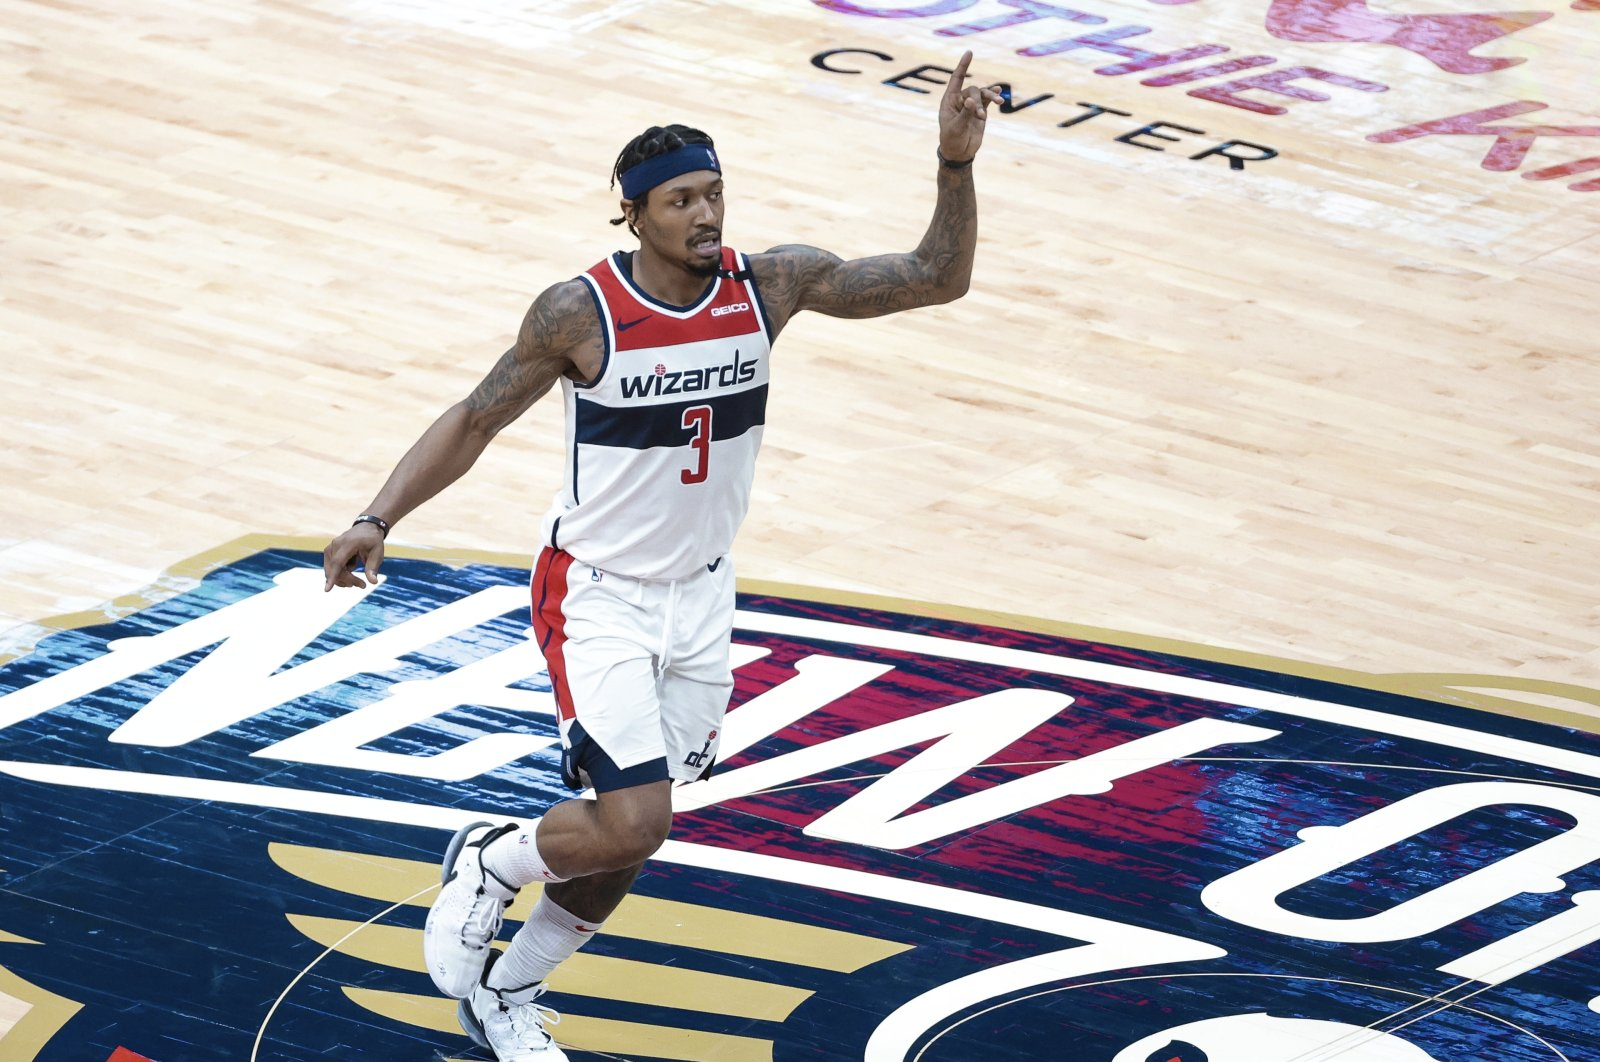 Washington Wizards guard Bradley Beal reacts after a score against the New Orleans Pelicans in the fourth quarter of an NBA basketball game in New Orleans, Louisiana, U.S., Jan. 27, 2021. (AP Photo)